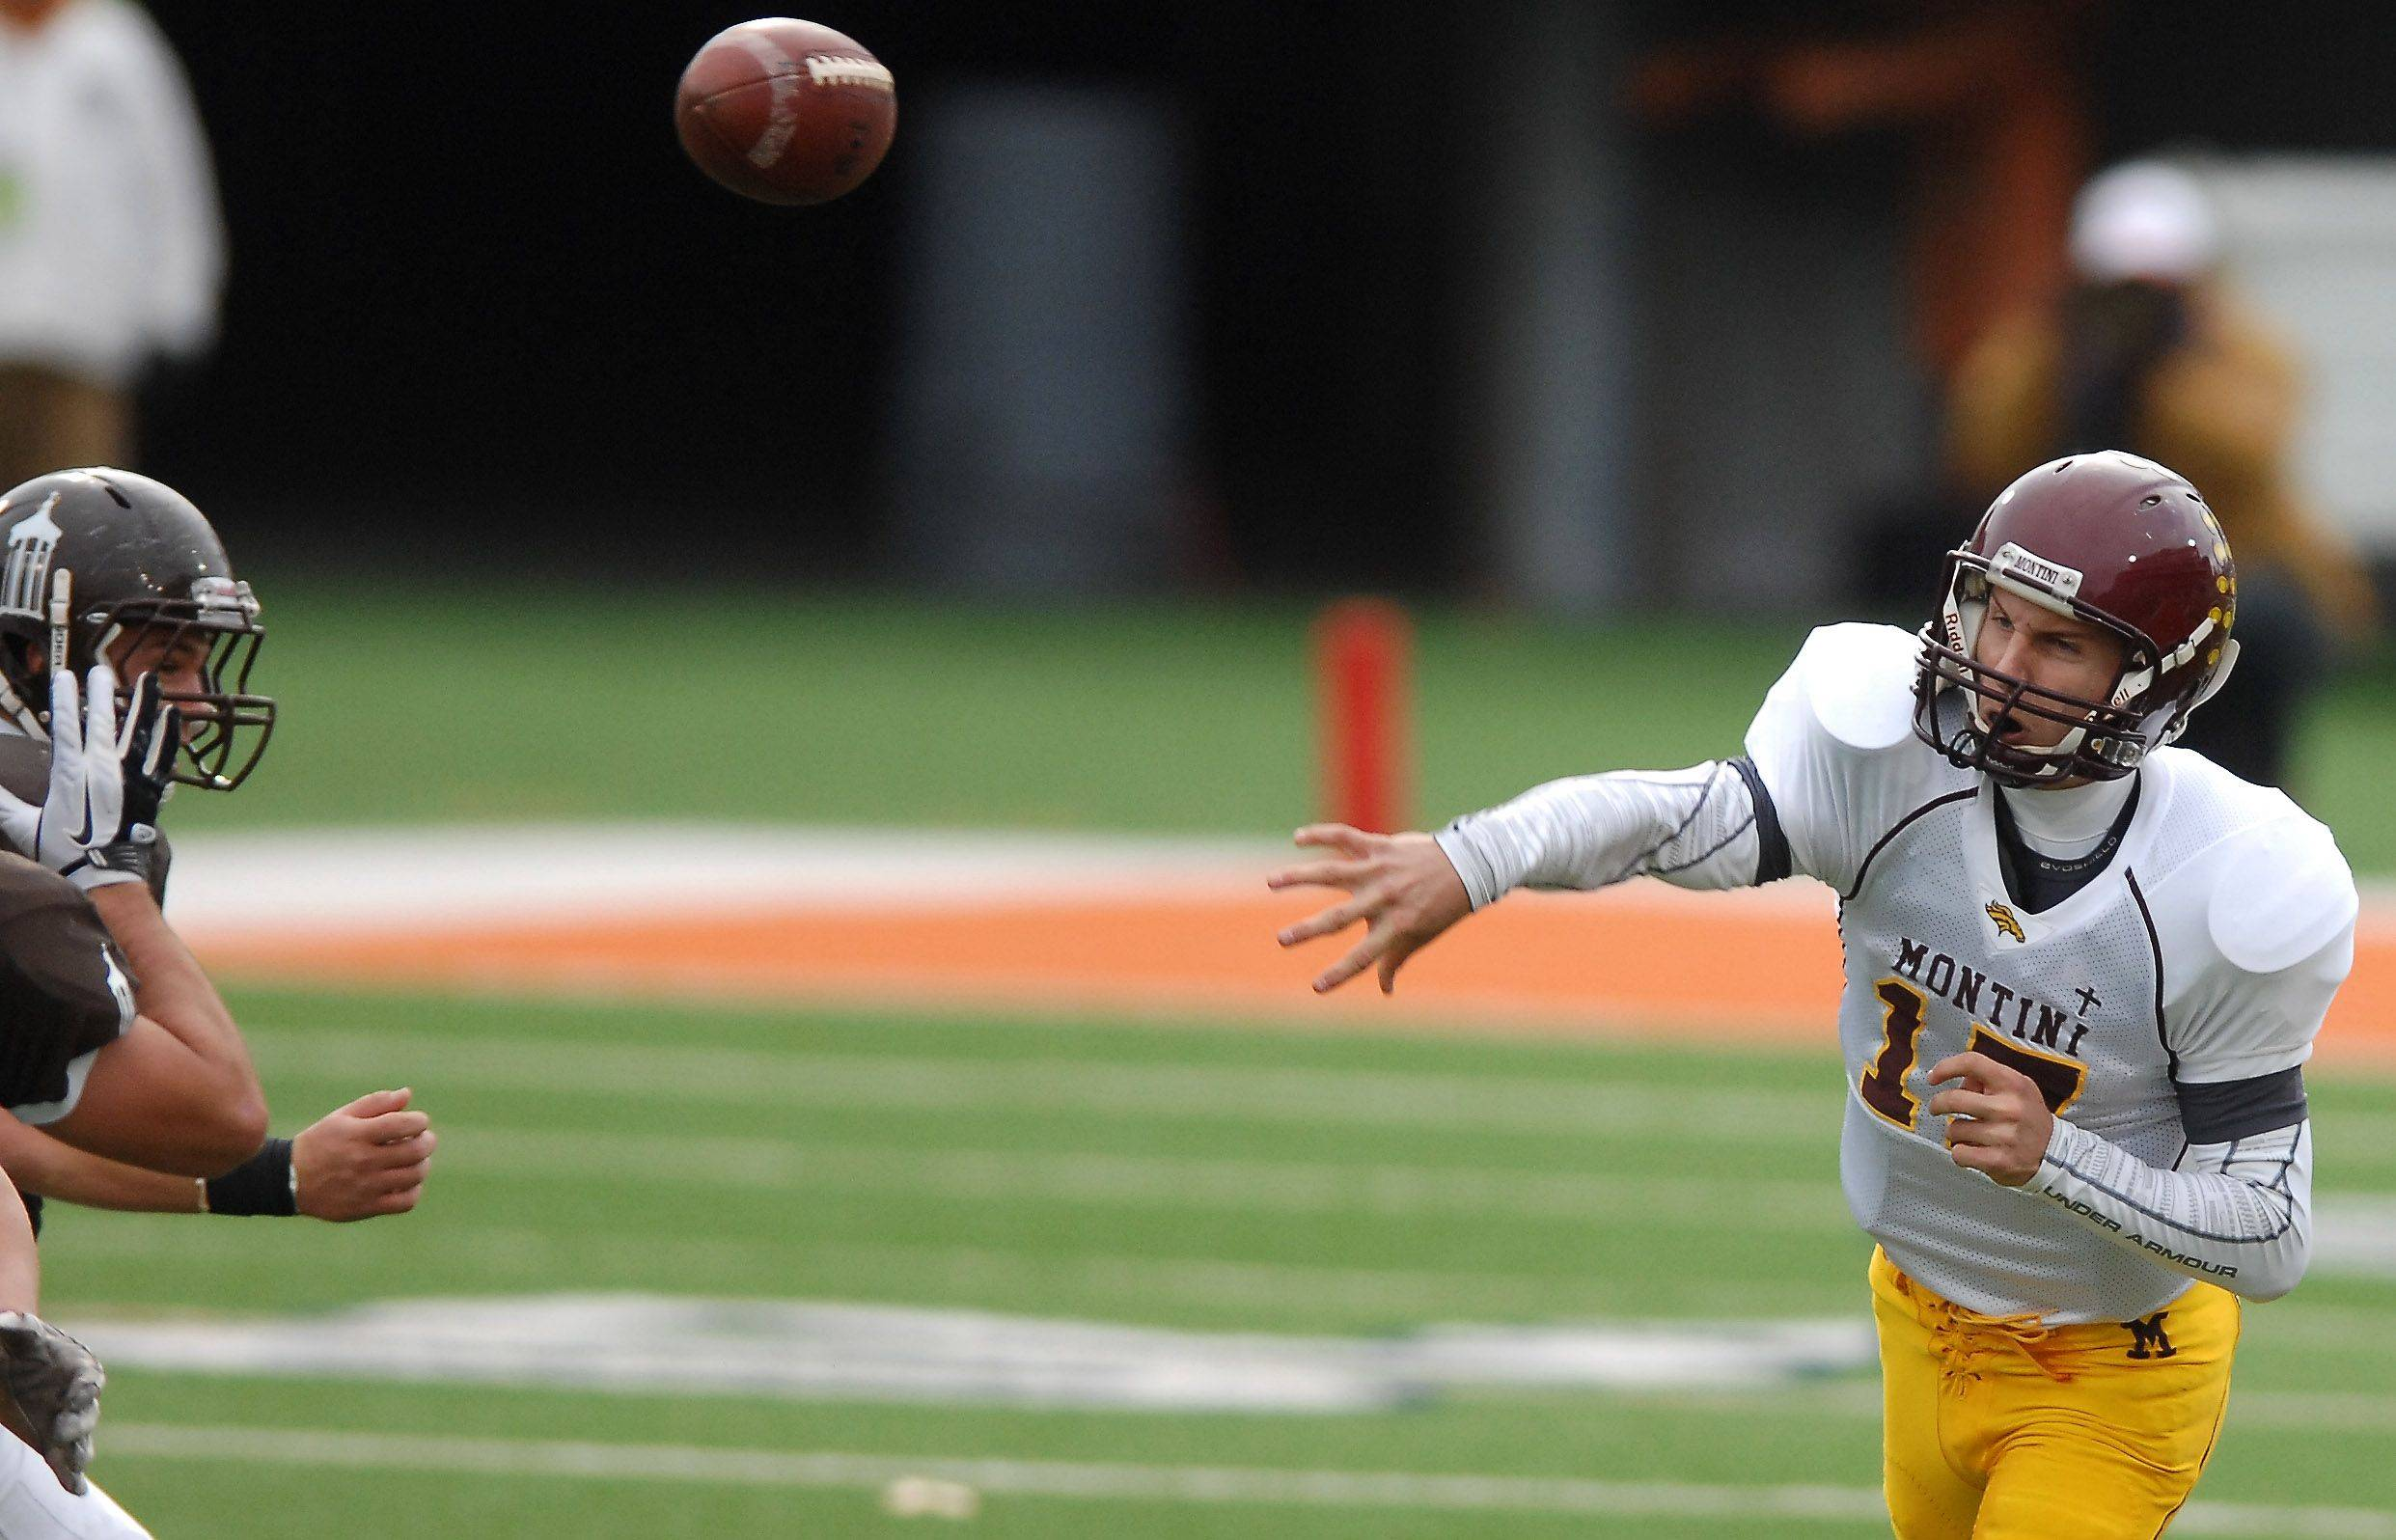 Montini quarterback John Rhode fires a second-half touchdown pass during the Class 5A state championship in Champaign on Saturday.